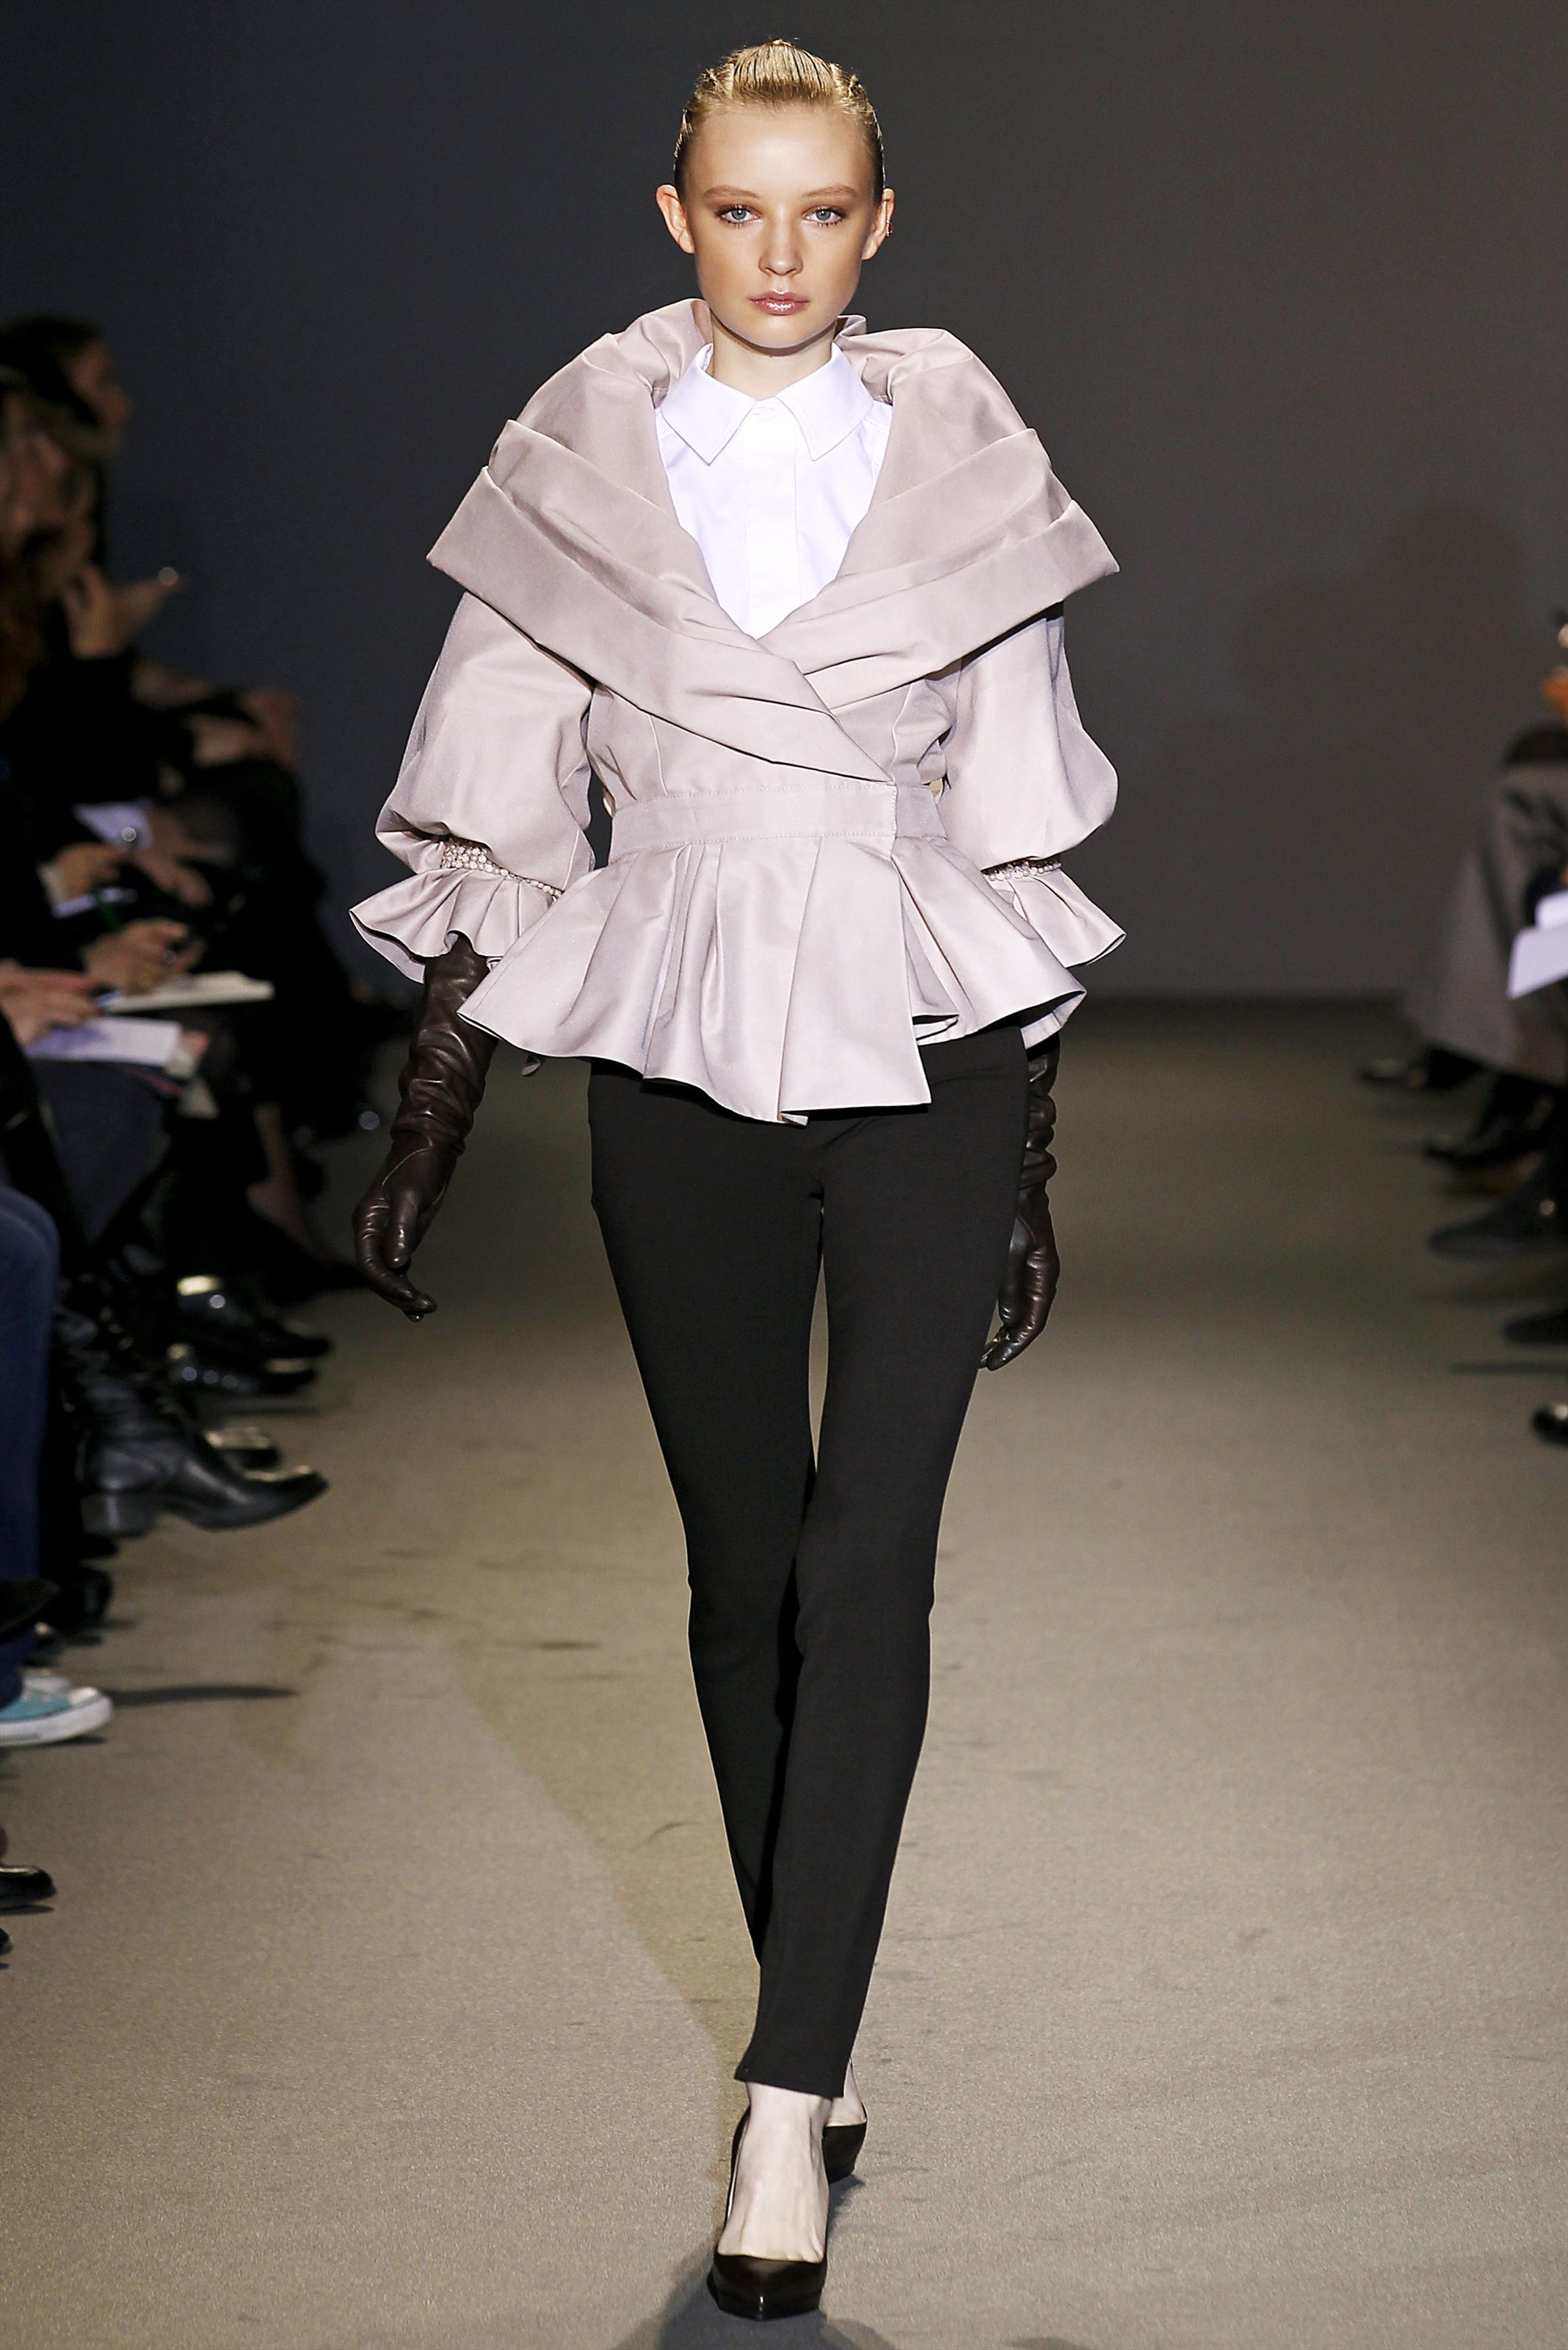 Andrew gn fashion pinterest fall winter fasion and fashion